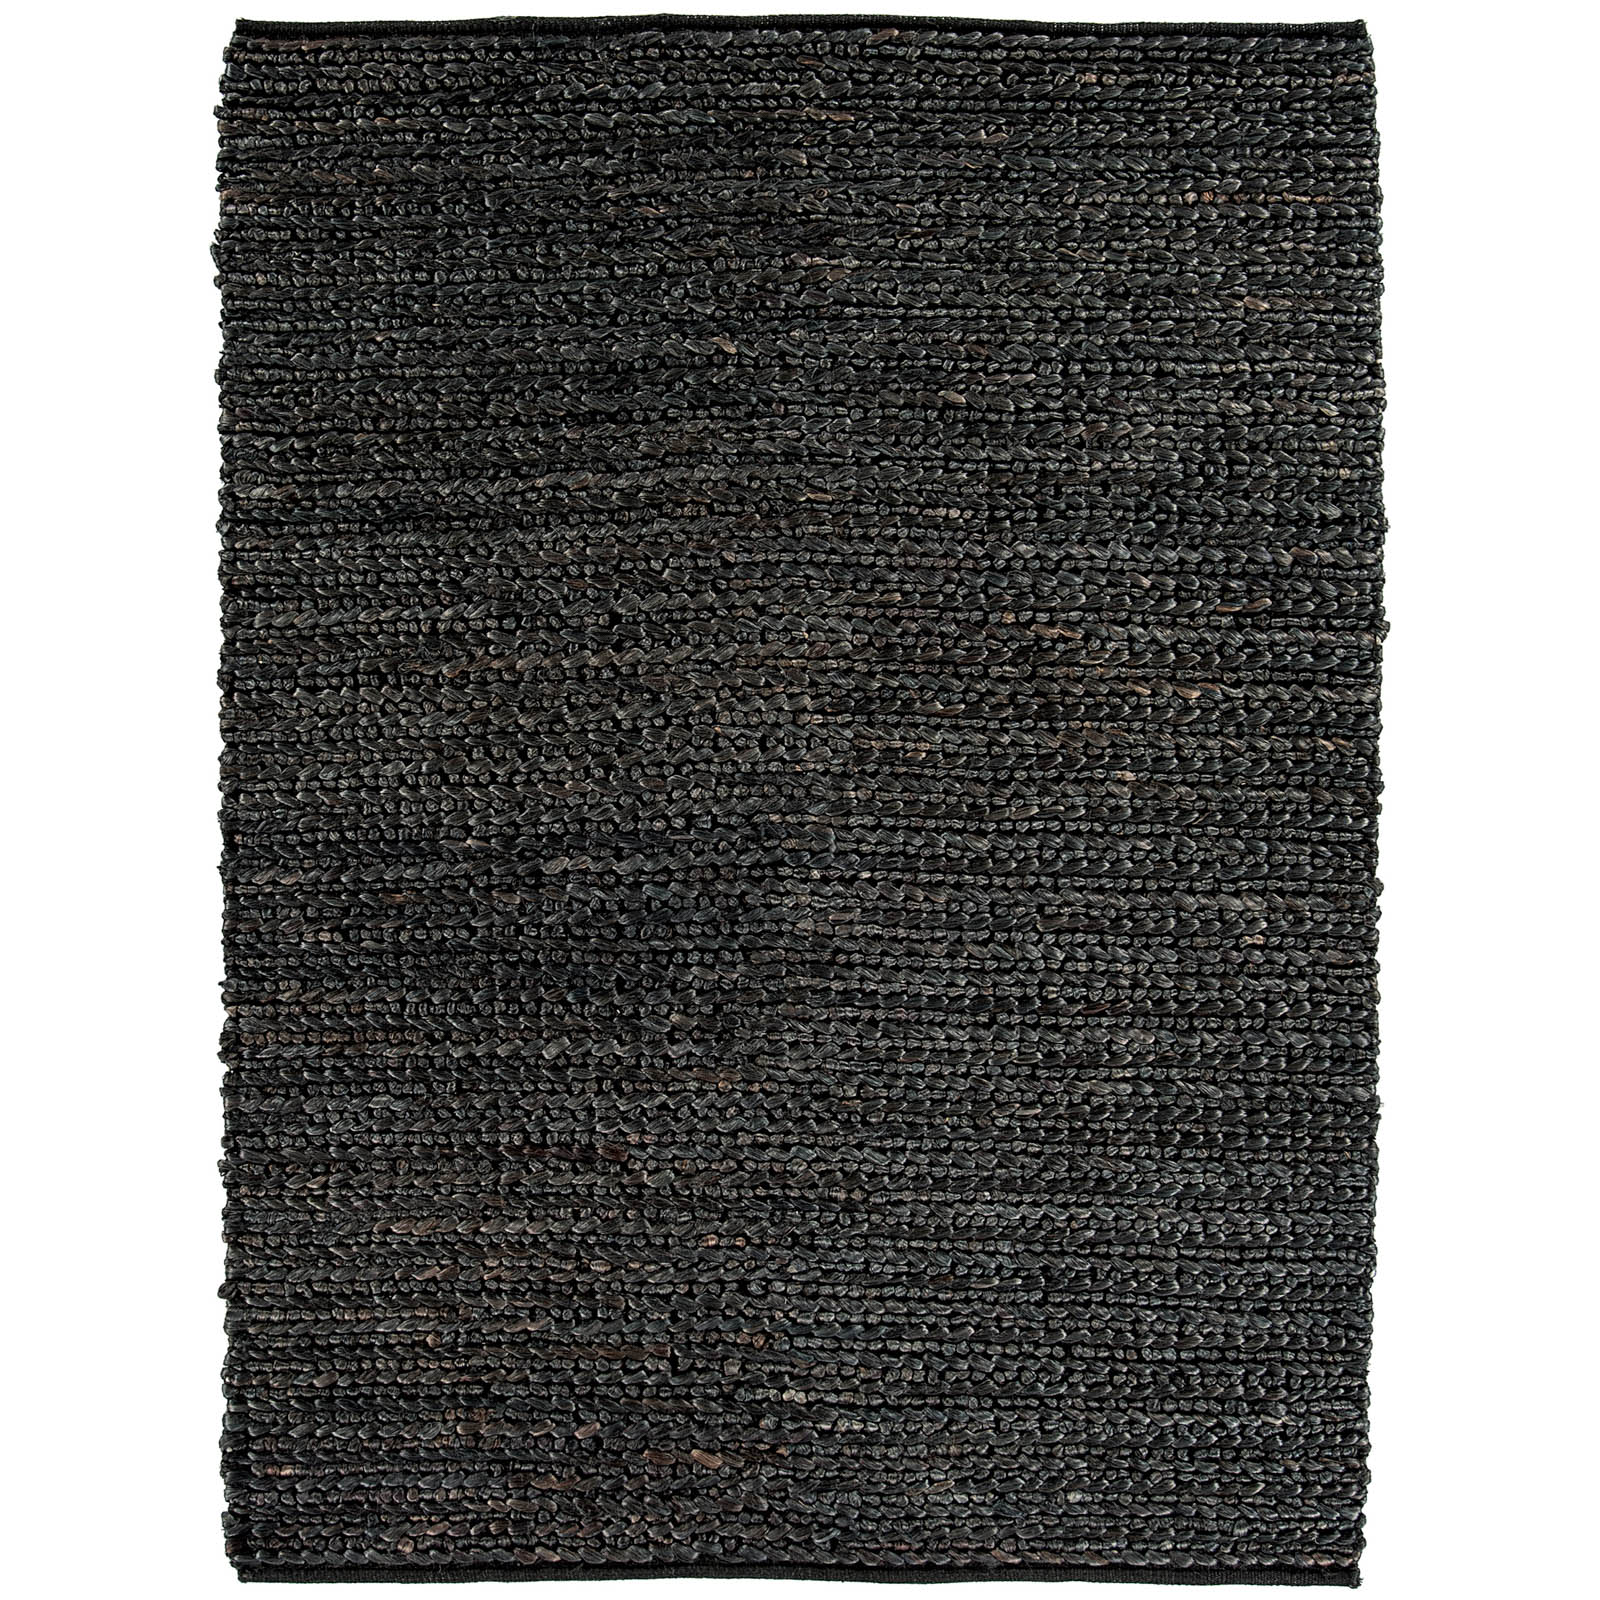 Abacus Jute Rugs in Charcoal